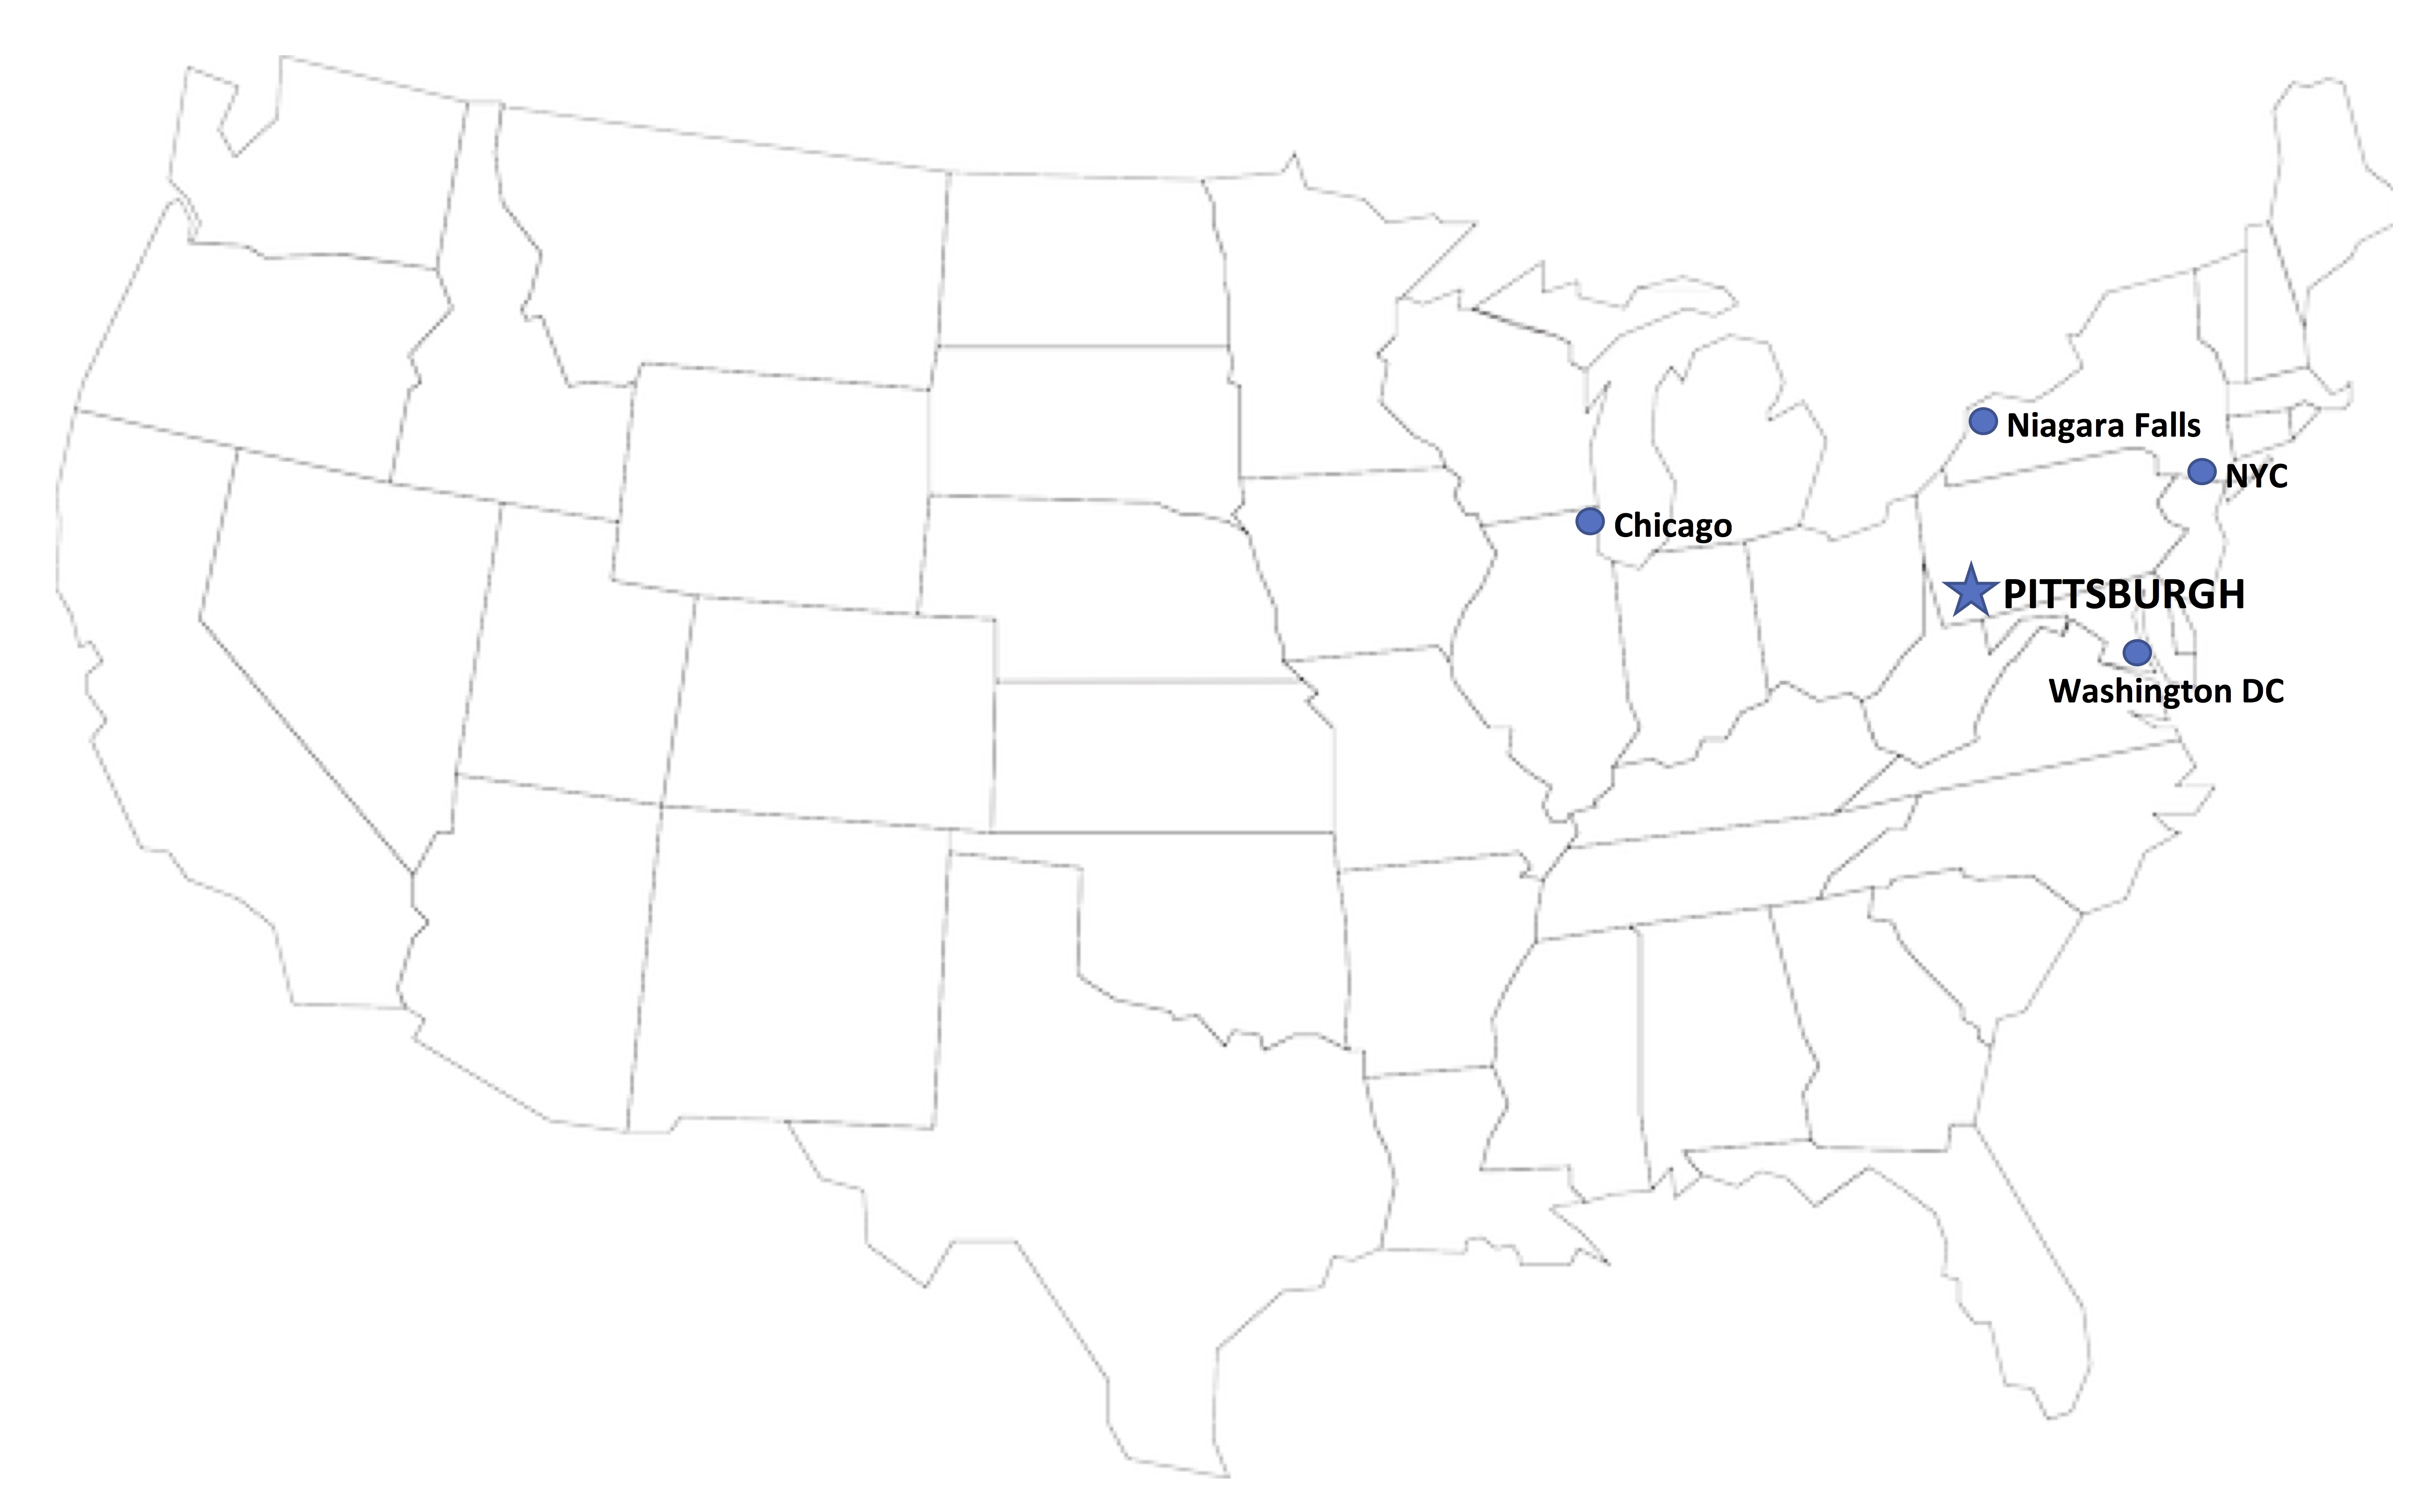 map showing the location of Pittsburgh in the USA